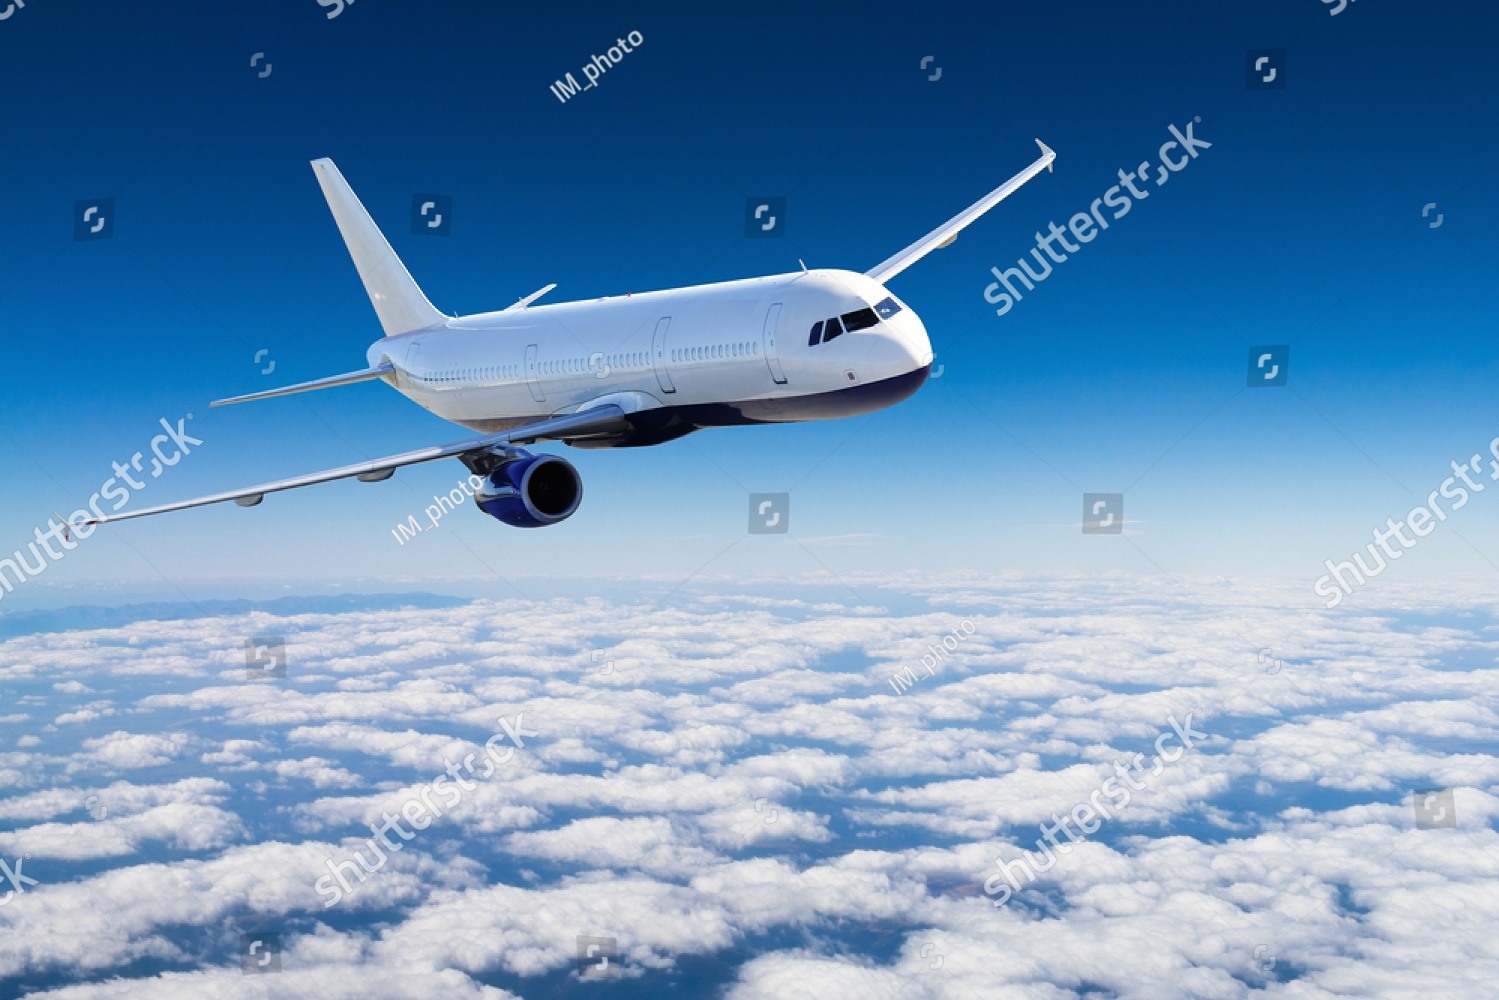 stock-photo-airplane-in-the-sky-passenger-airliner-aircraft-155843945.jpg